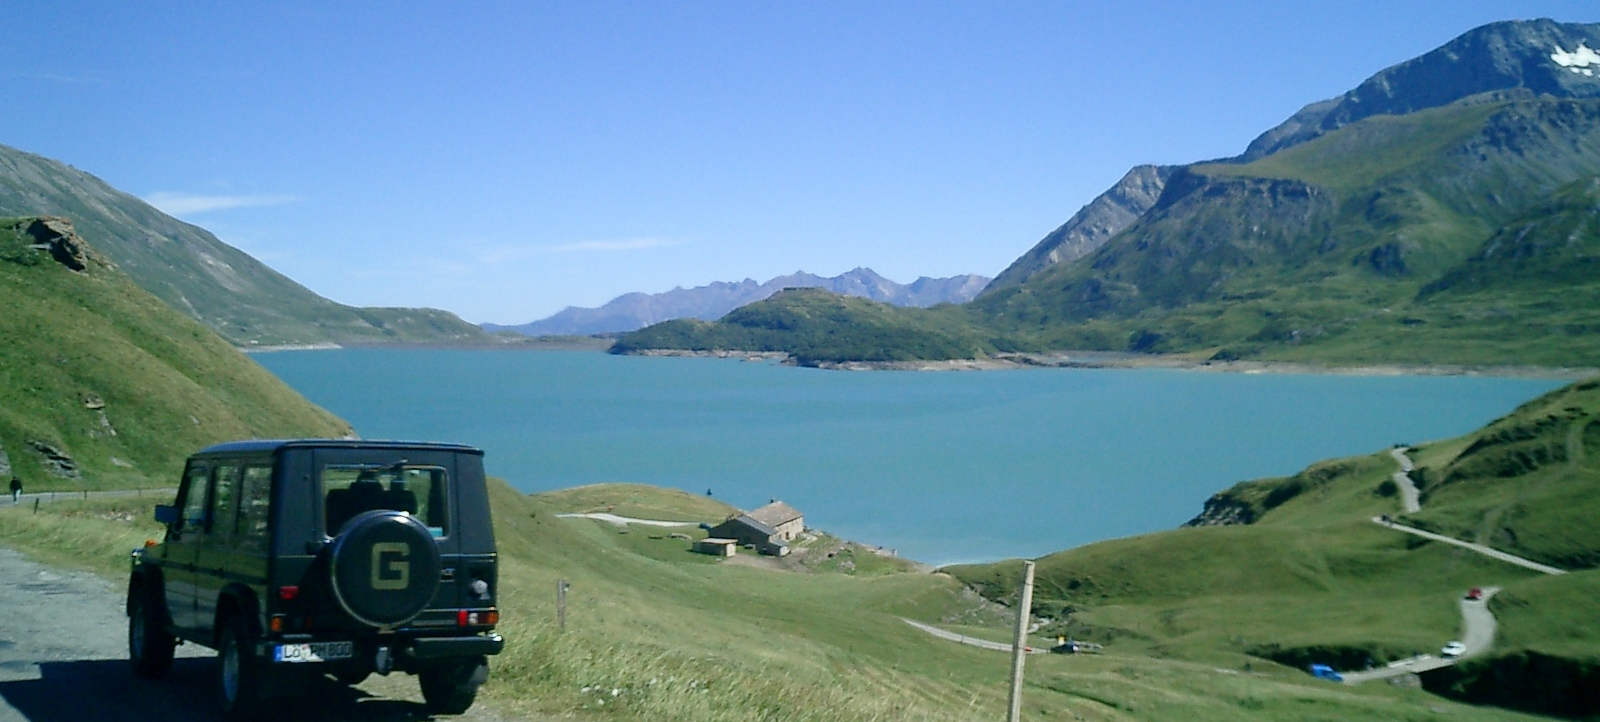 Lac Cenis